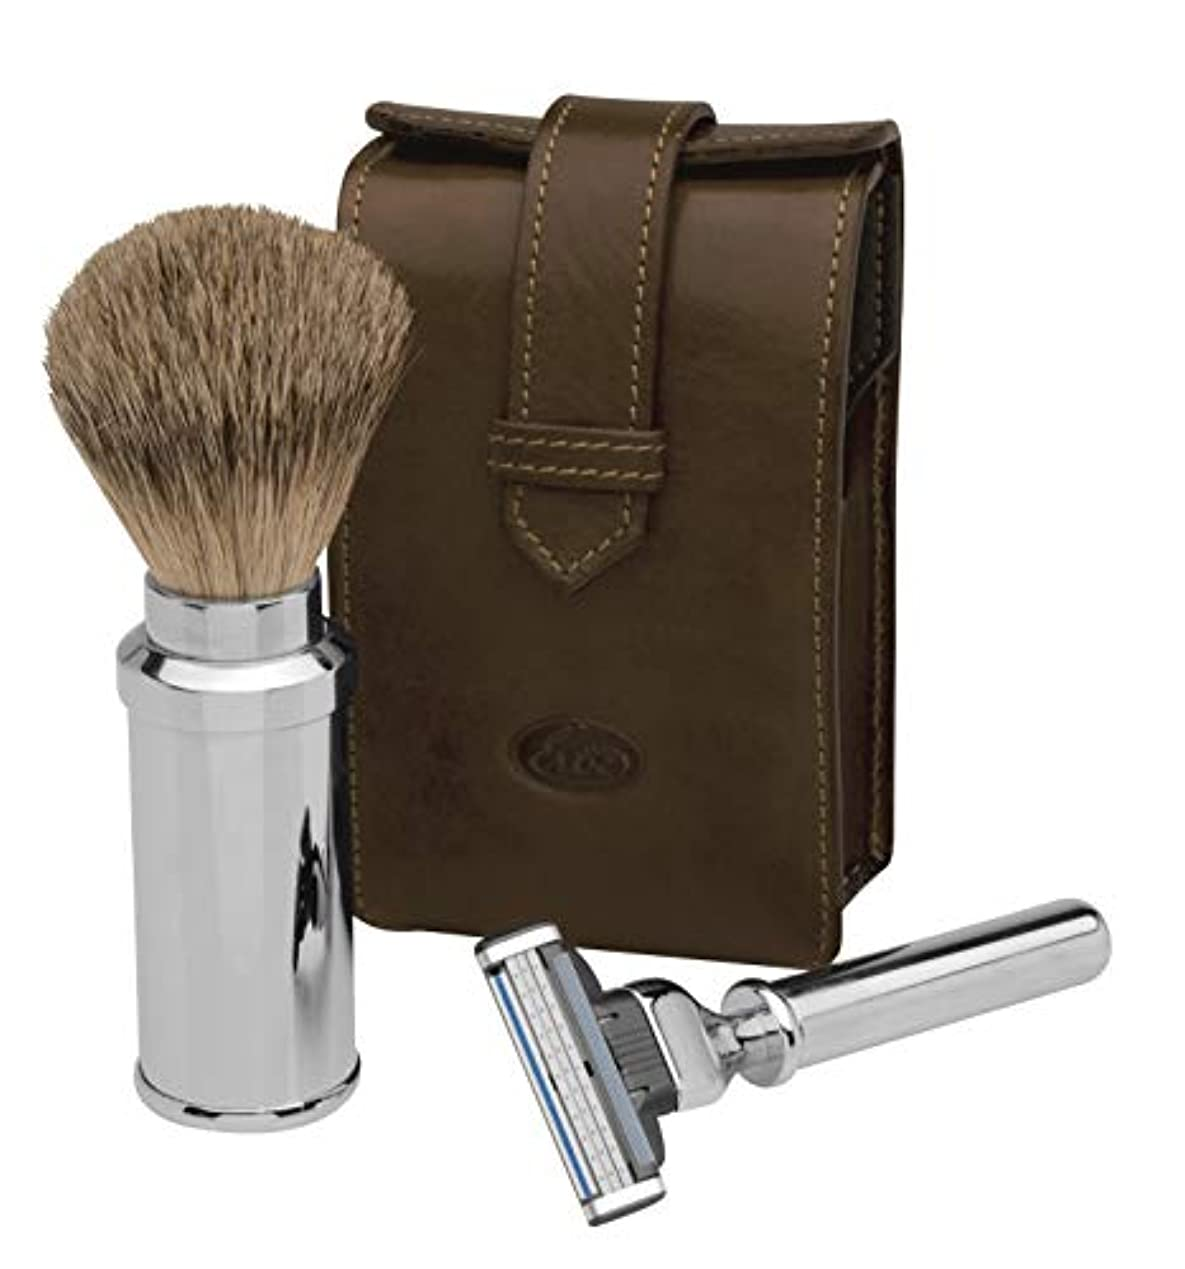 Erbe Travel Shaving Set, Razor and Shaving Brush in brown Leather Pocket